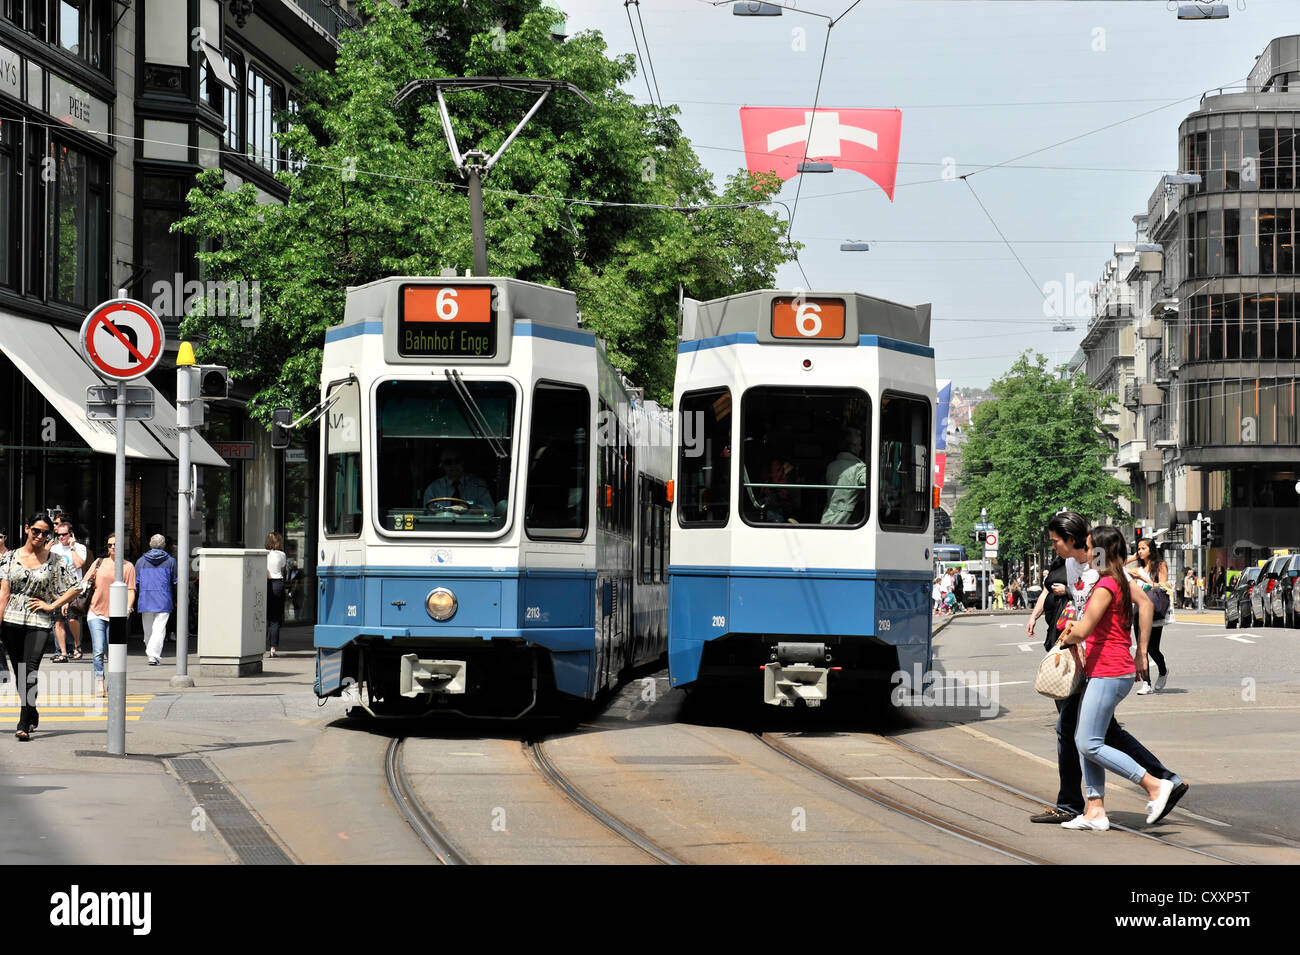 Trams, Bahnhofstrasse street, Zurich, canton of Zurich, Switzerland, Europe - Stock Image